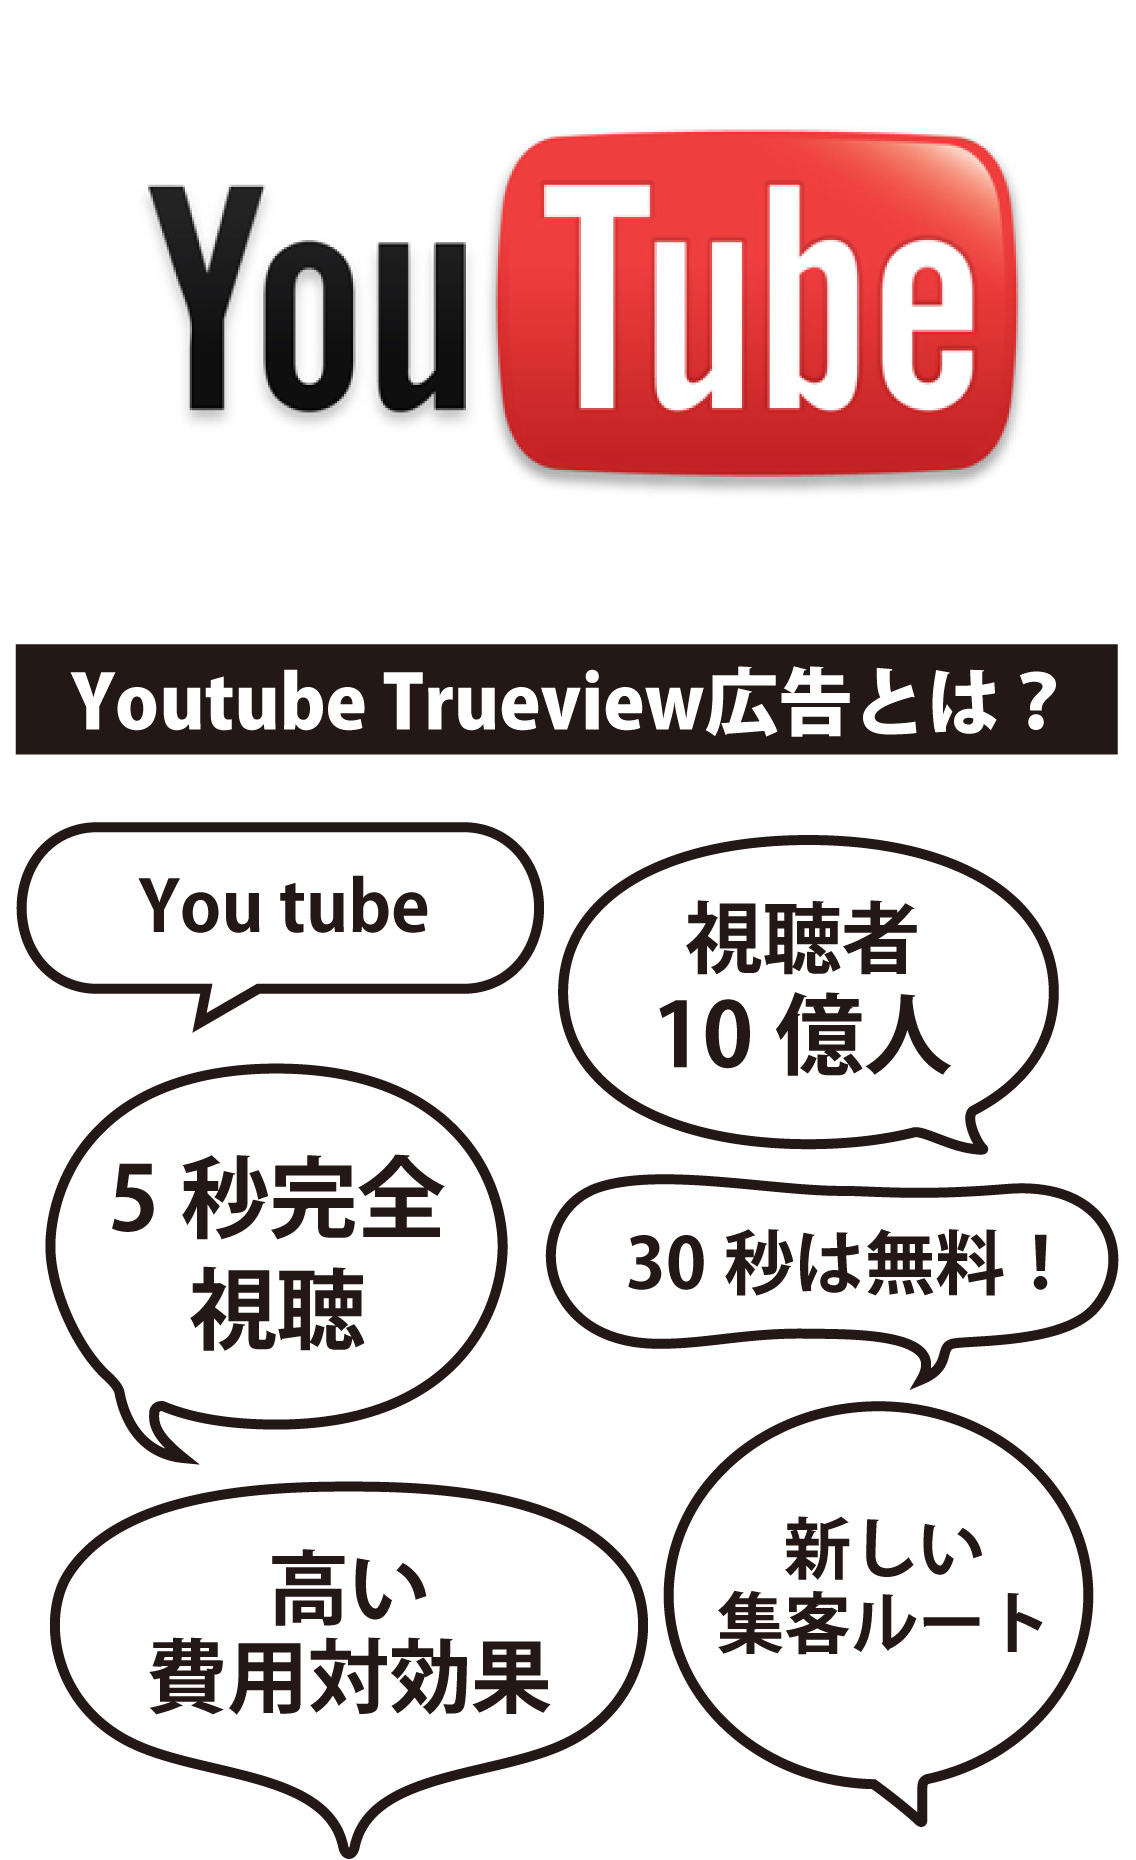 Youtube Trueview広告とは?